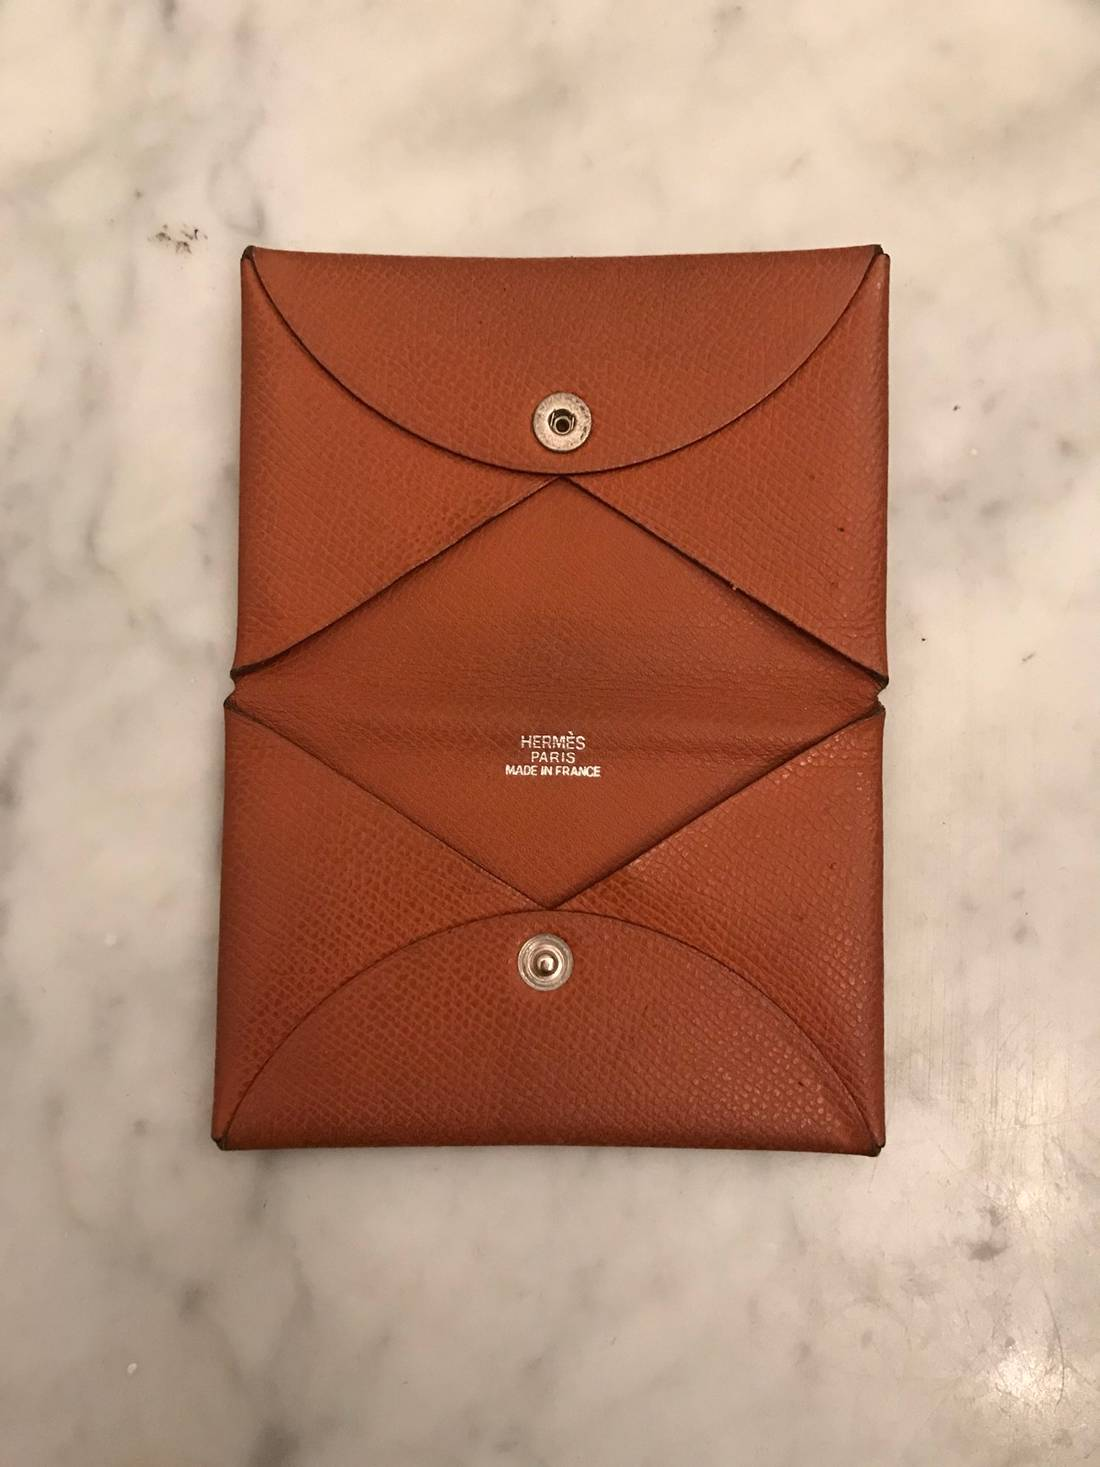 Hermes herms business card holder size one size wallets for sale hermes herms business card holder size one size colourmoves